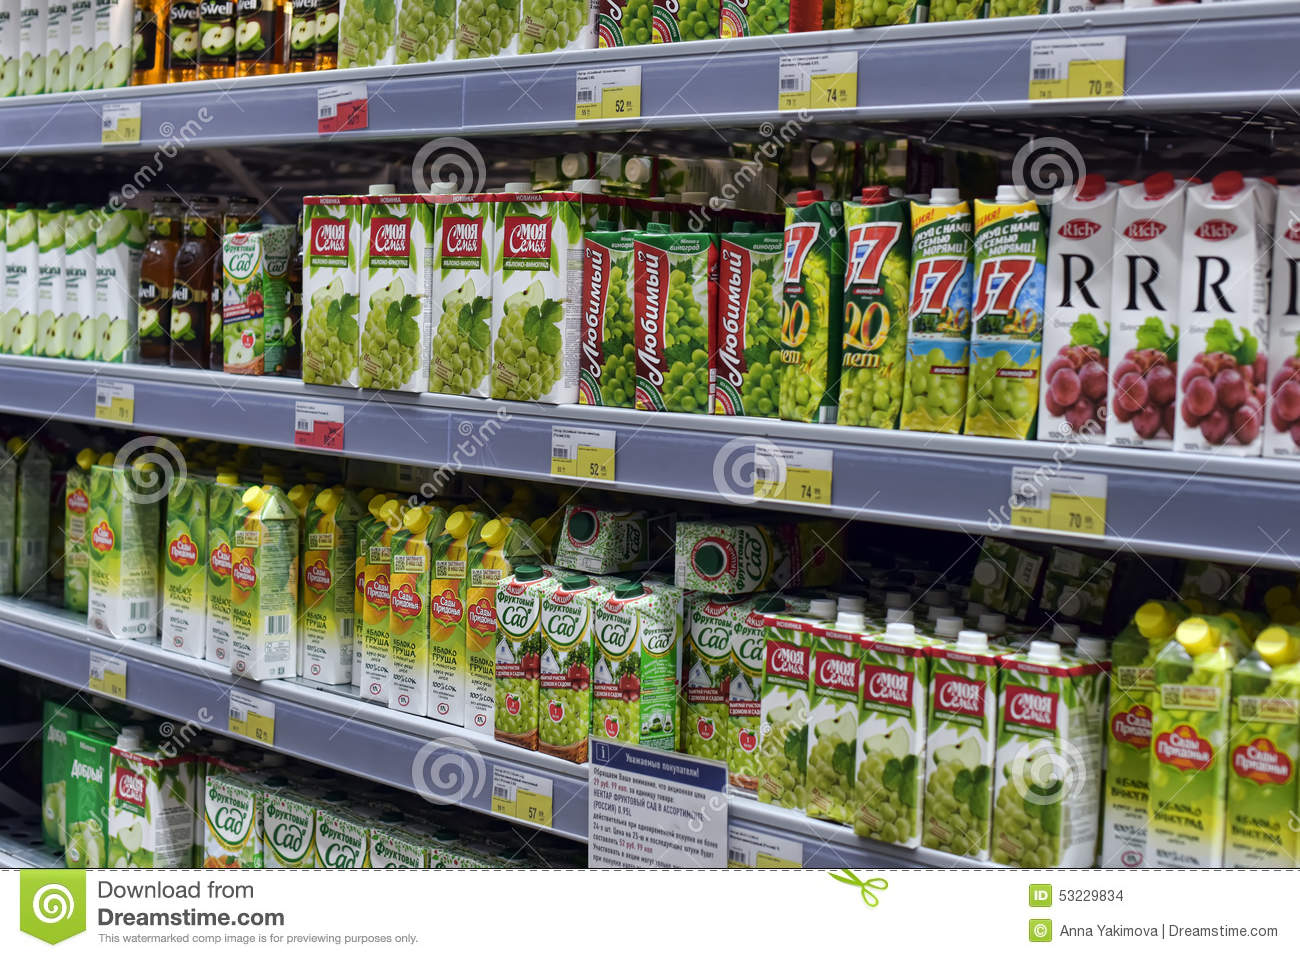 juices market in russia Summary fruit/vegetable juices/nectars and juice/water or juice/tea blends, targeted specifically at babies aged up to 36 months of age mostly in ready-to-drink format baby drinks / juices (baby drinks) market in russia - outlook to 2020: market size, growth and forecast analytics is a broad level.